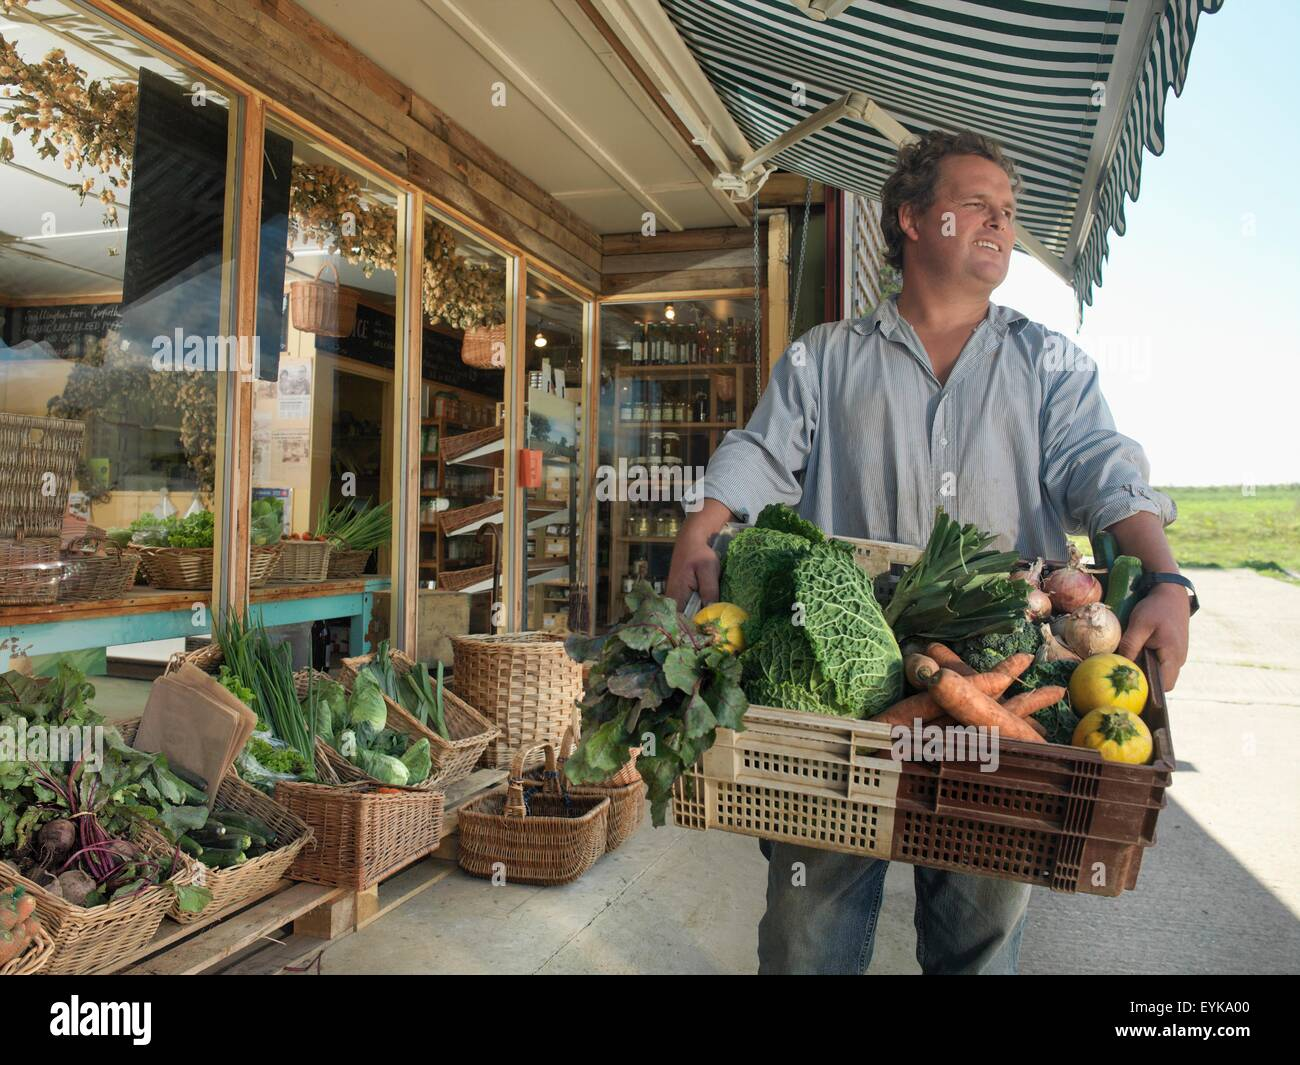 Portrait of male organic farmer with basket of organic vegetables outside farm shop - Stock Image